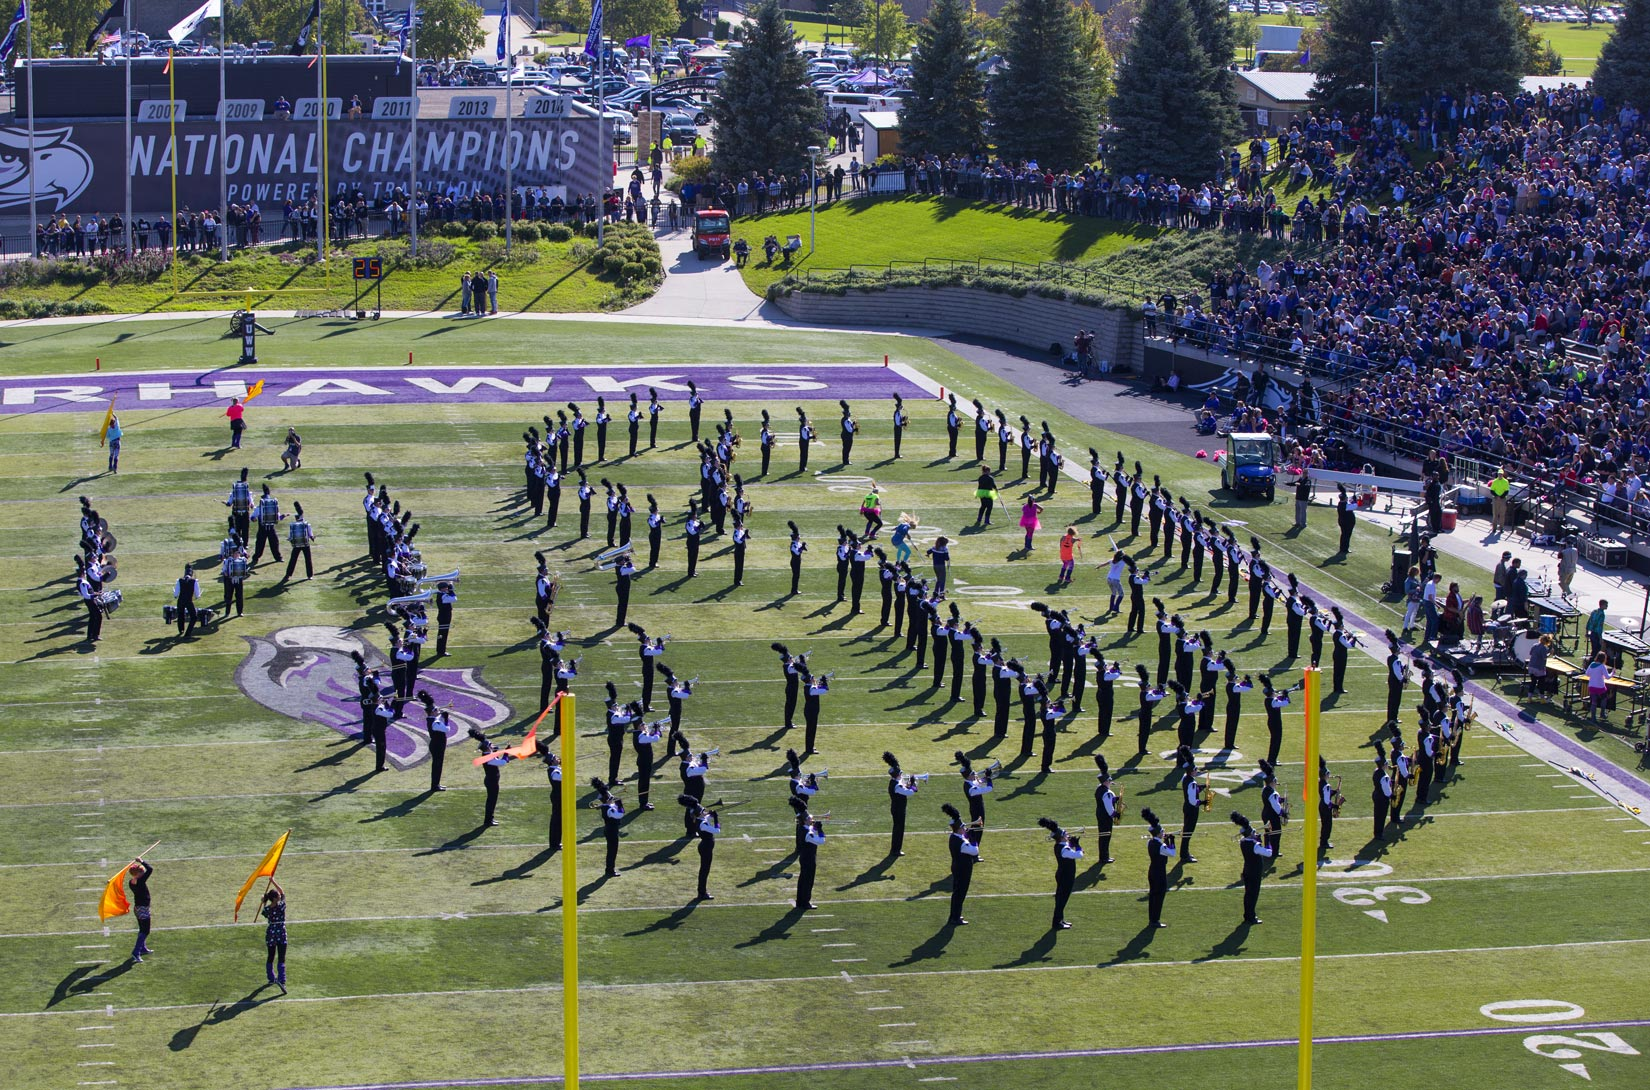 Uw Whitewater Marching Band To Perform At Packers Game On Sept 10 University Of Wisconsin Whitewater